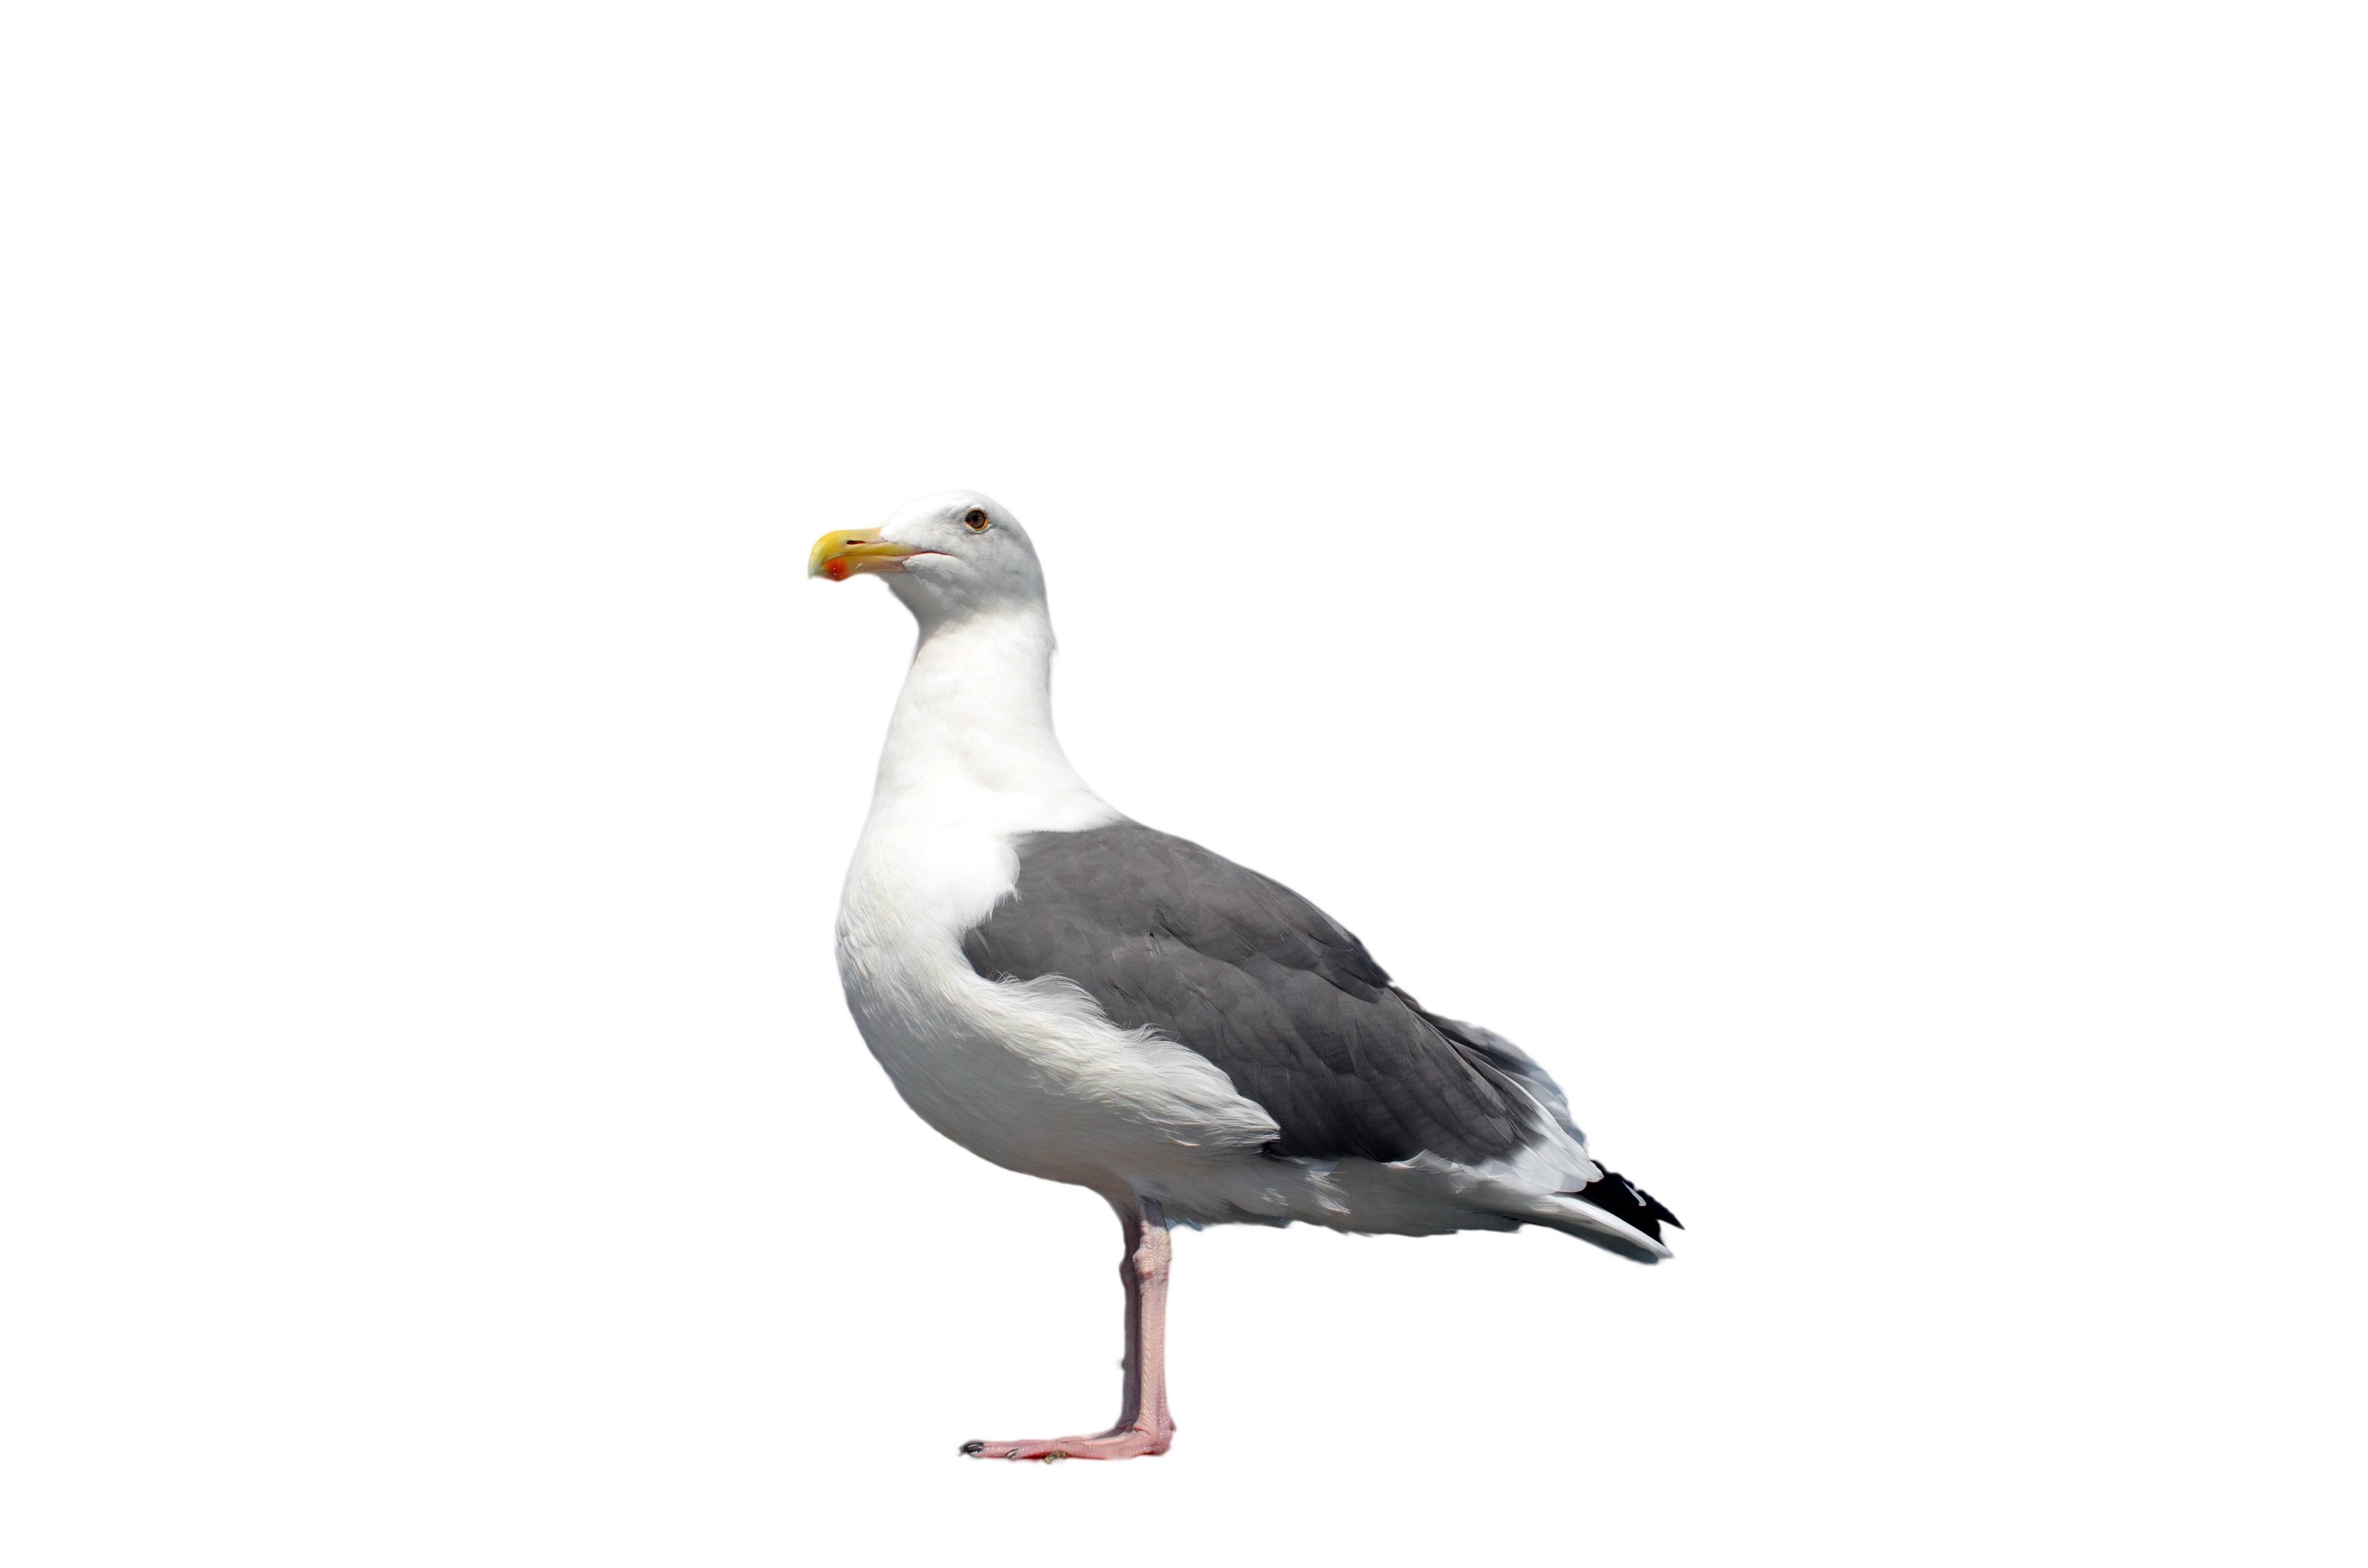 Seagull standing photo